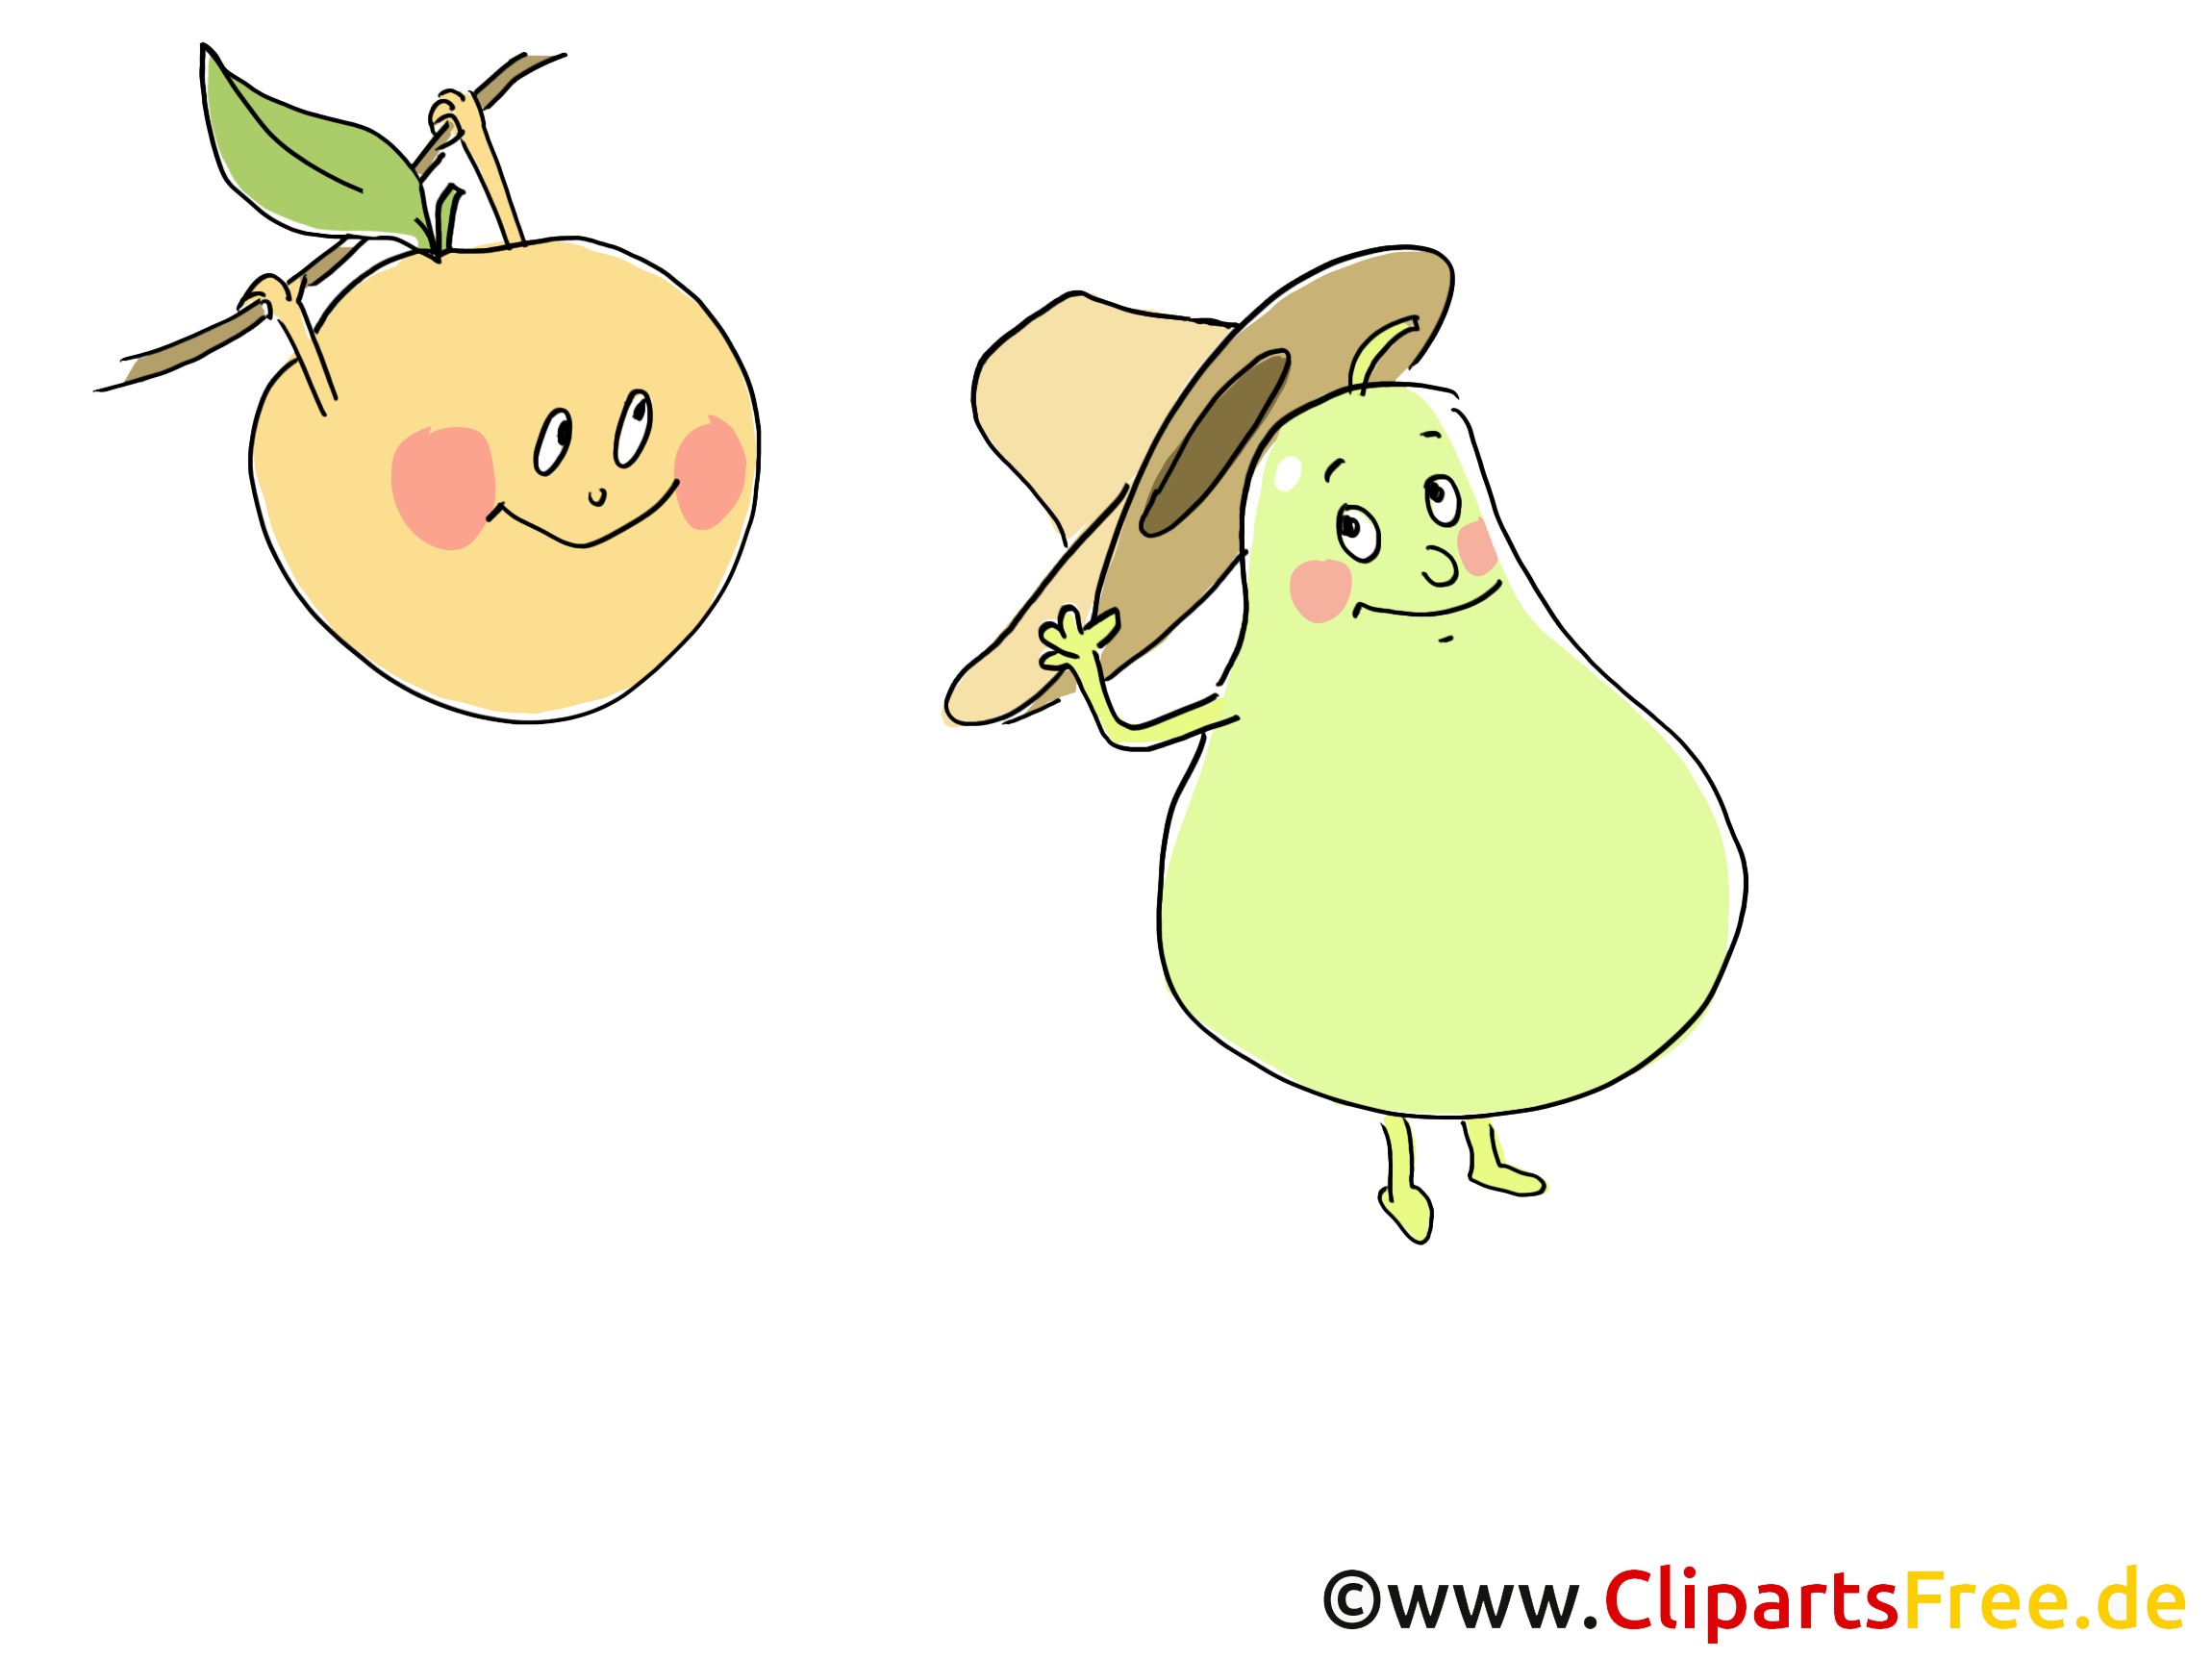 Clip art gratuit fruits dessin à télécharger